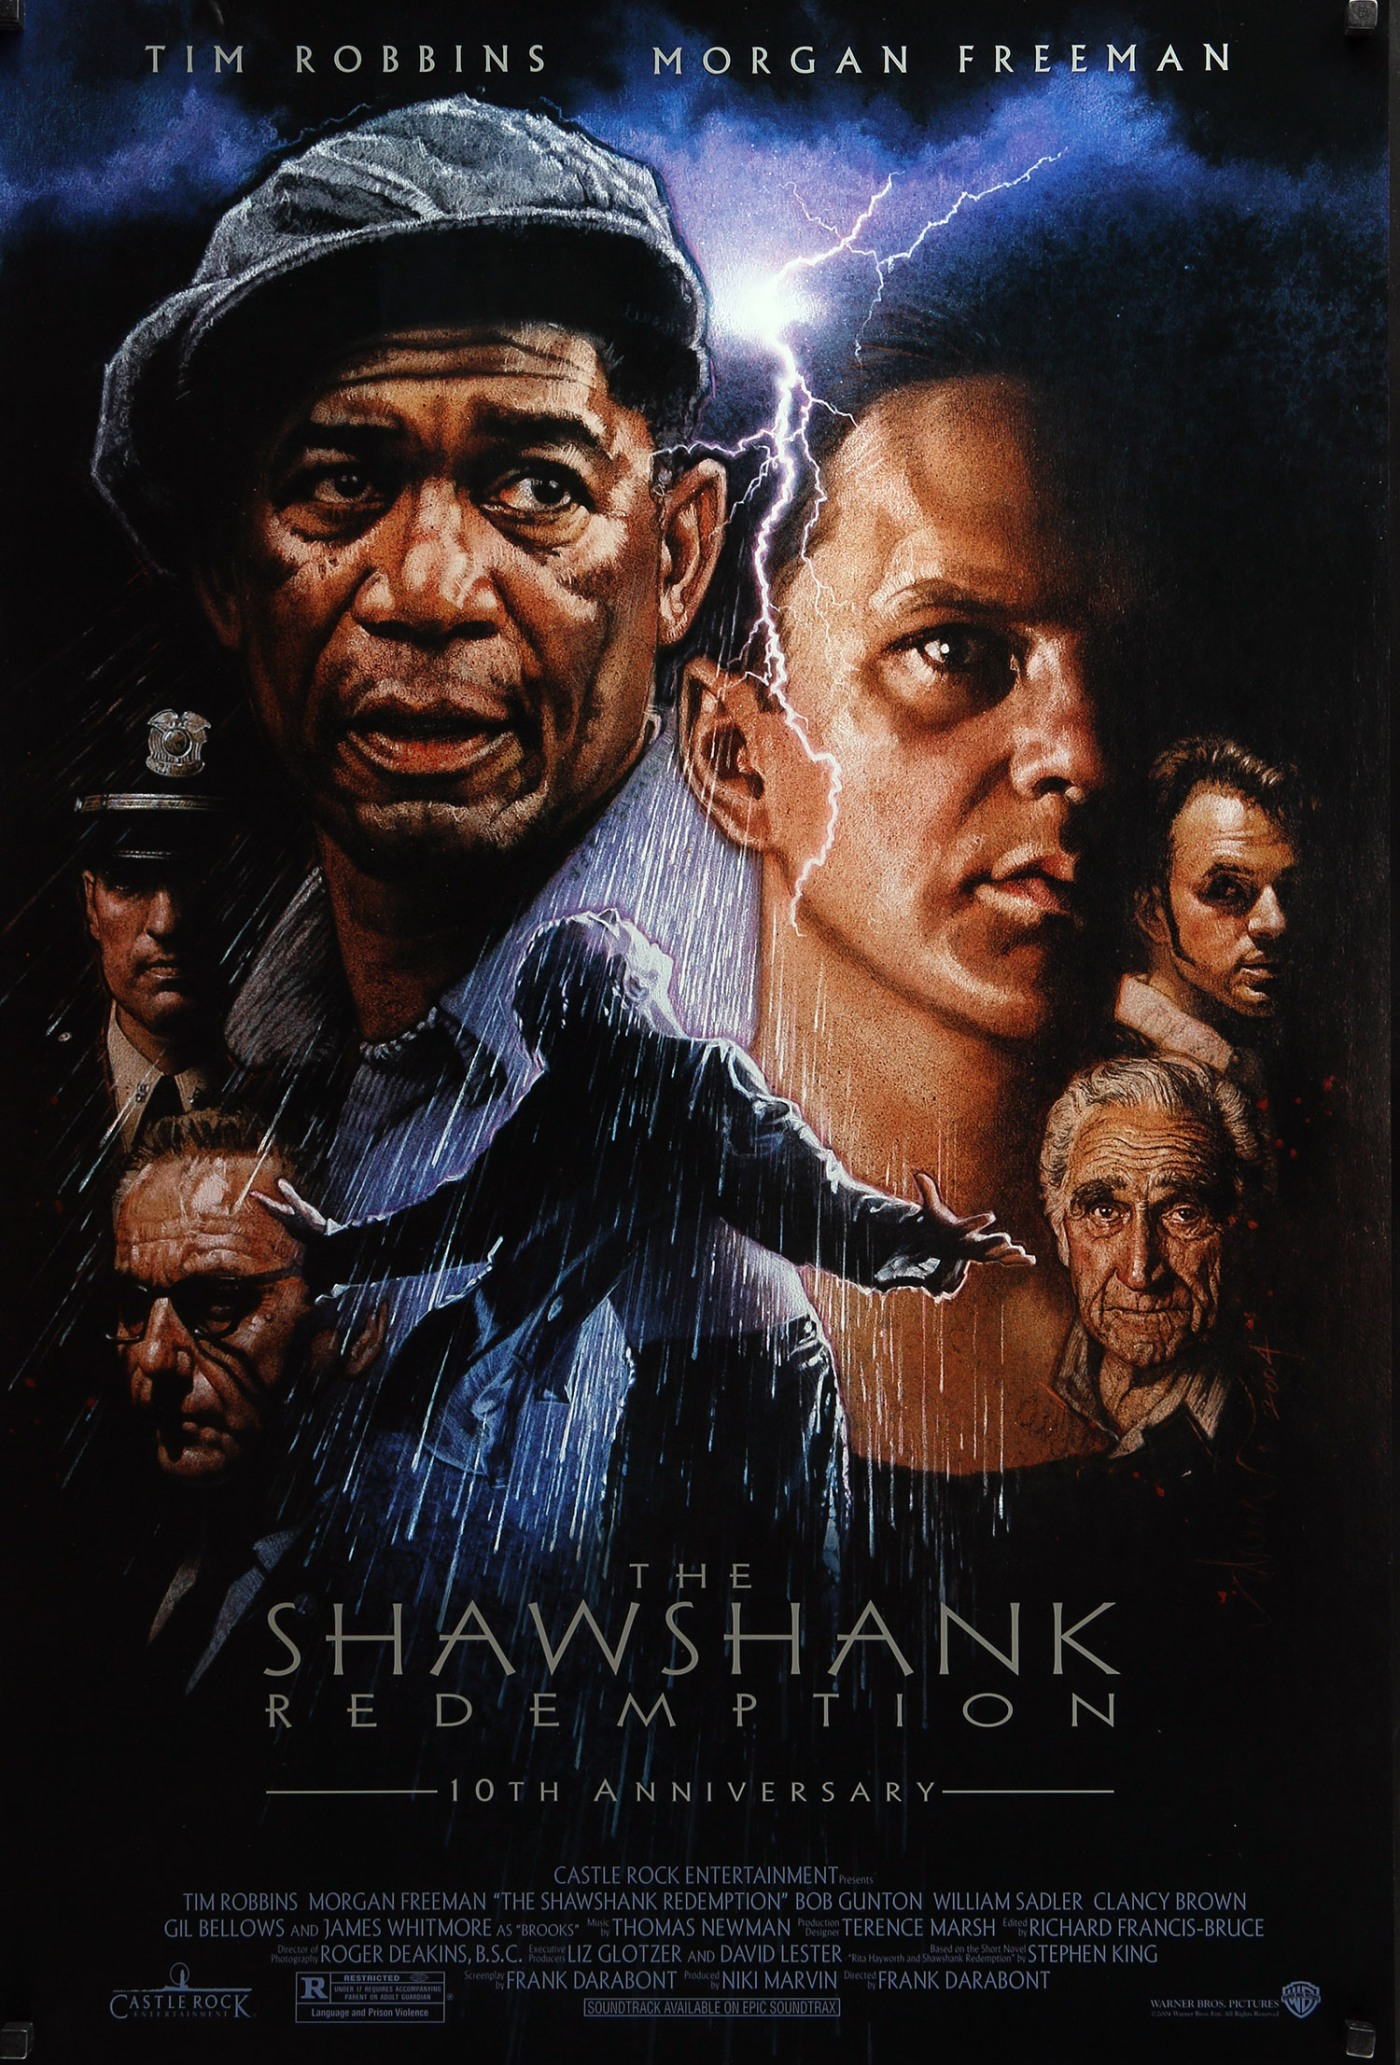 The Shawshank Redemption | Classical Movies